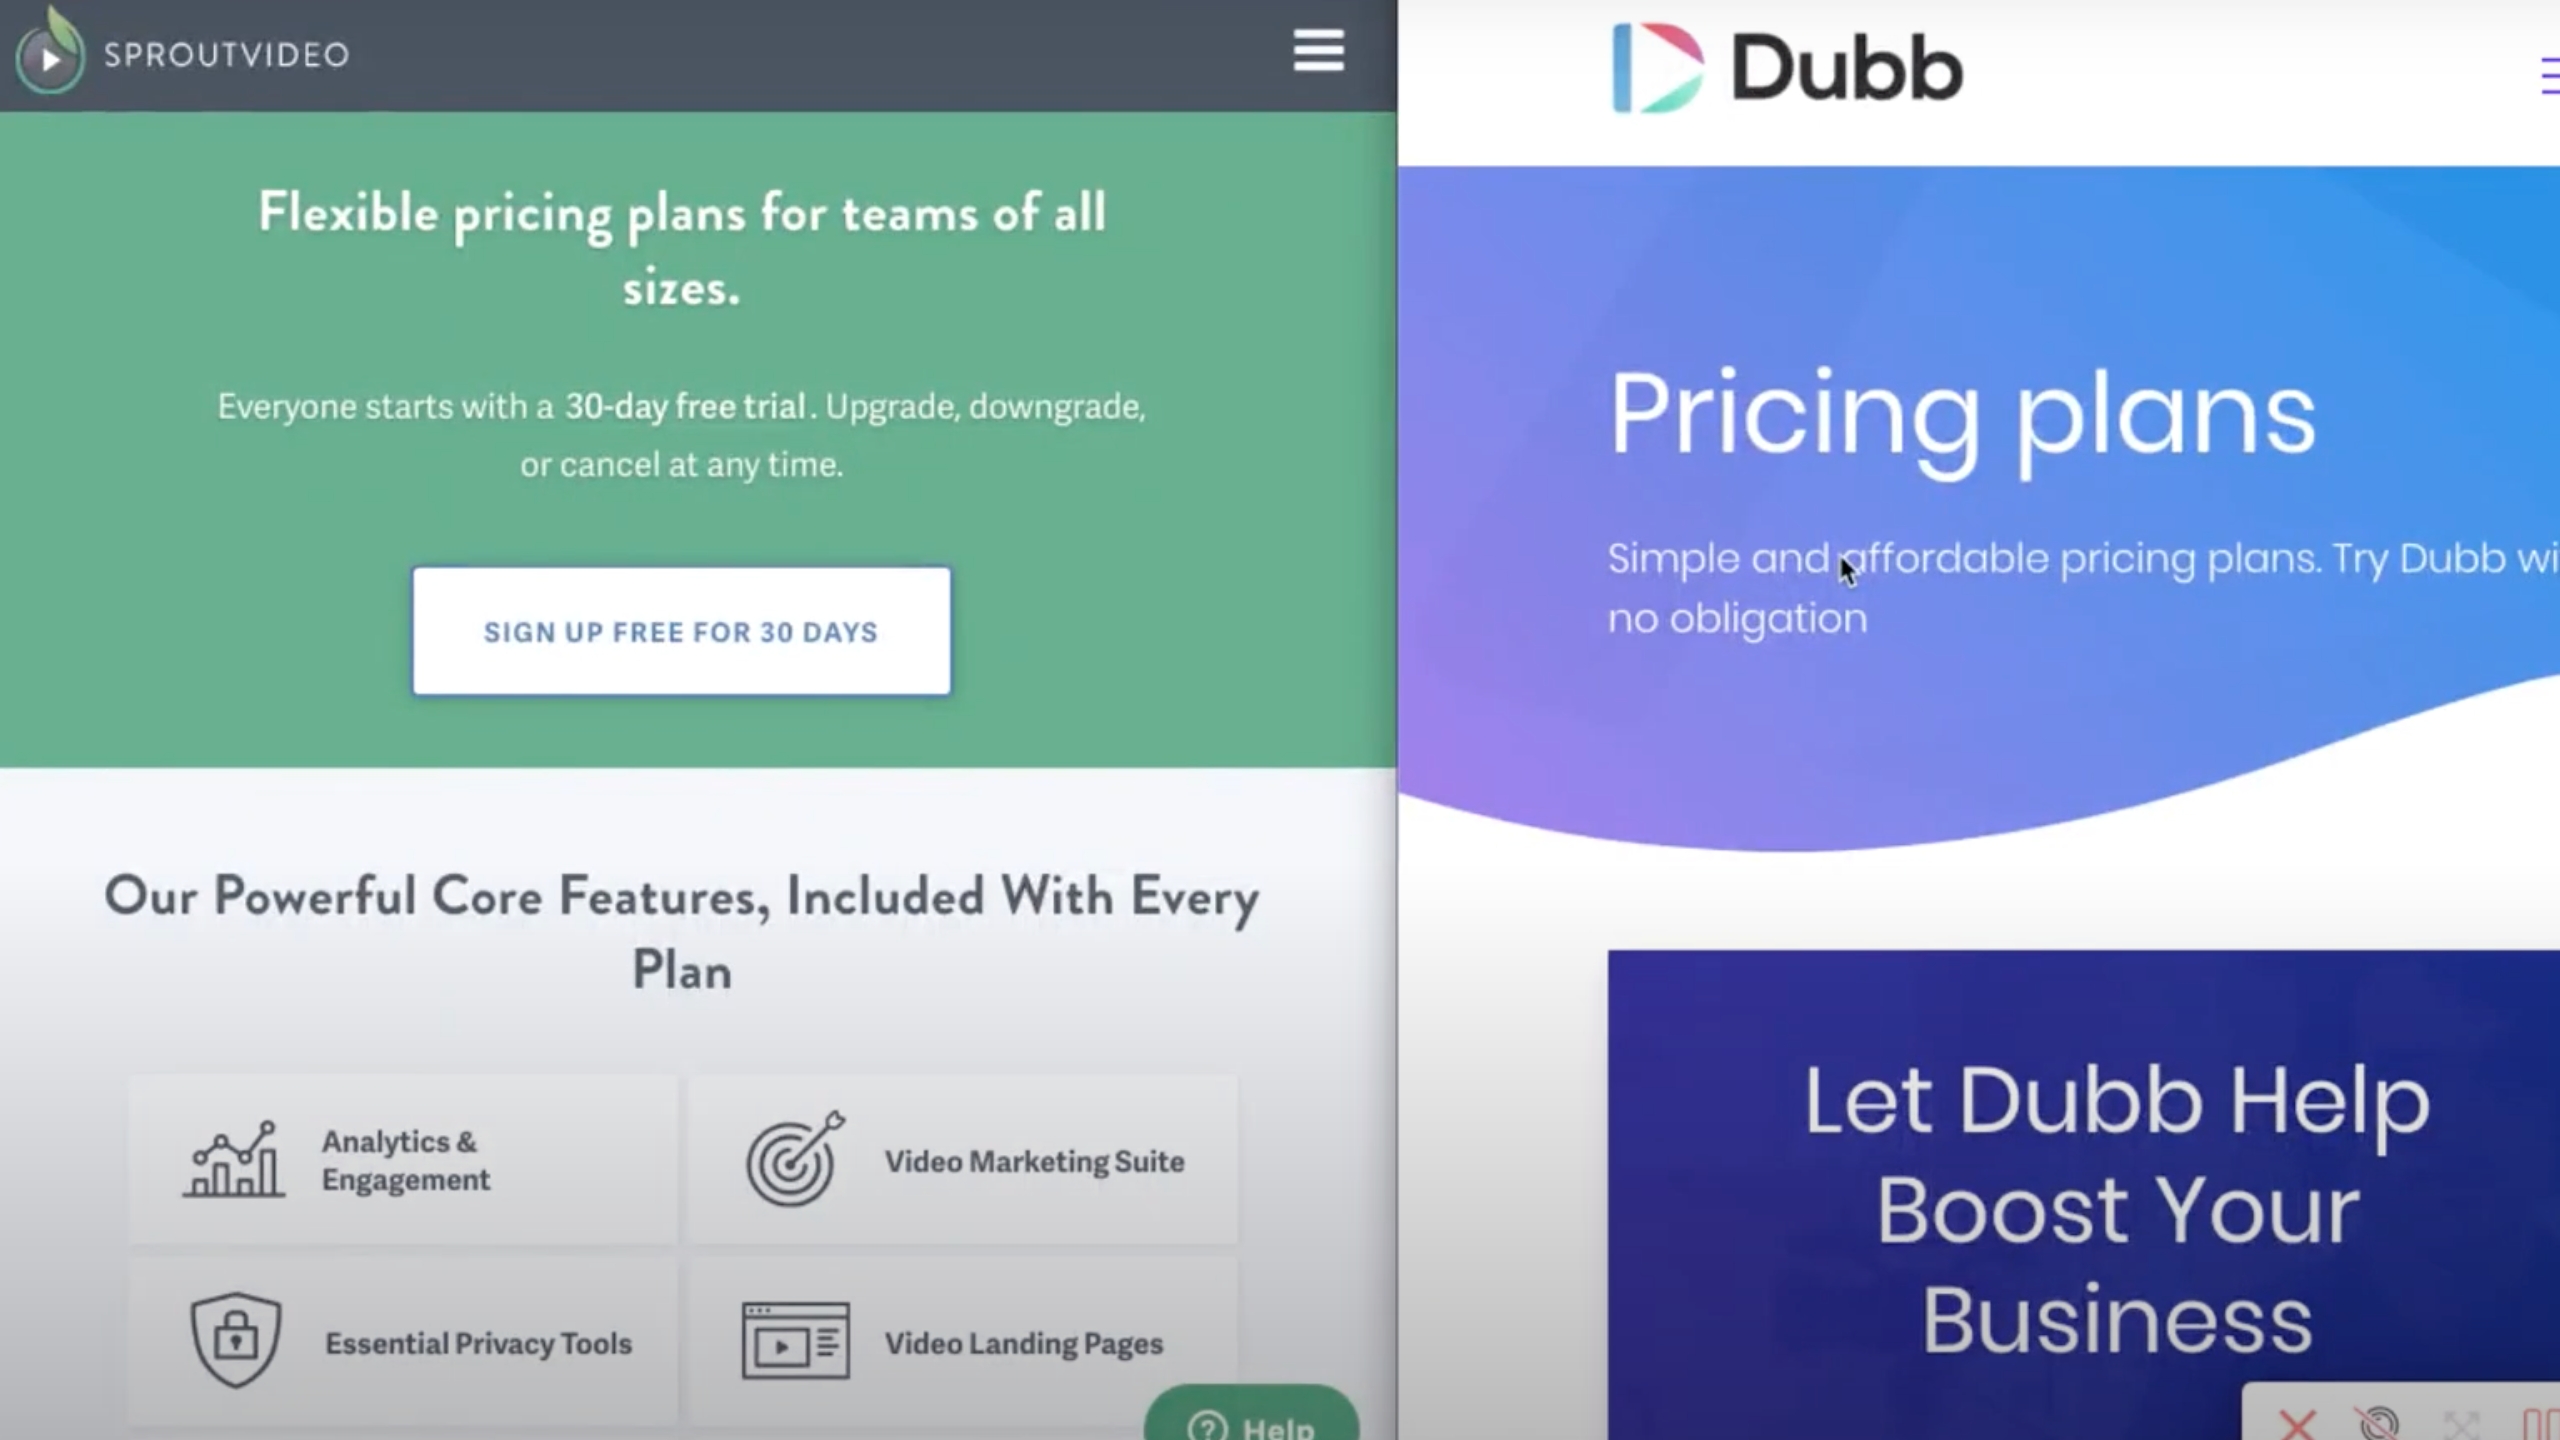 SproutVideo Pricing compared to Dubb Pricing